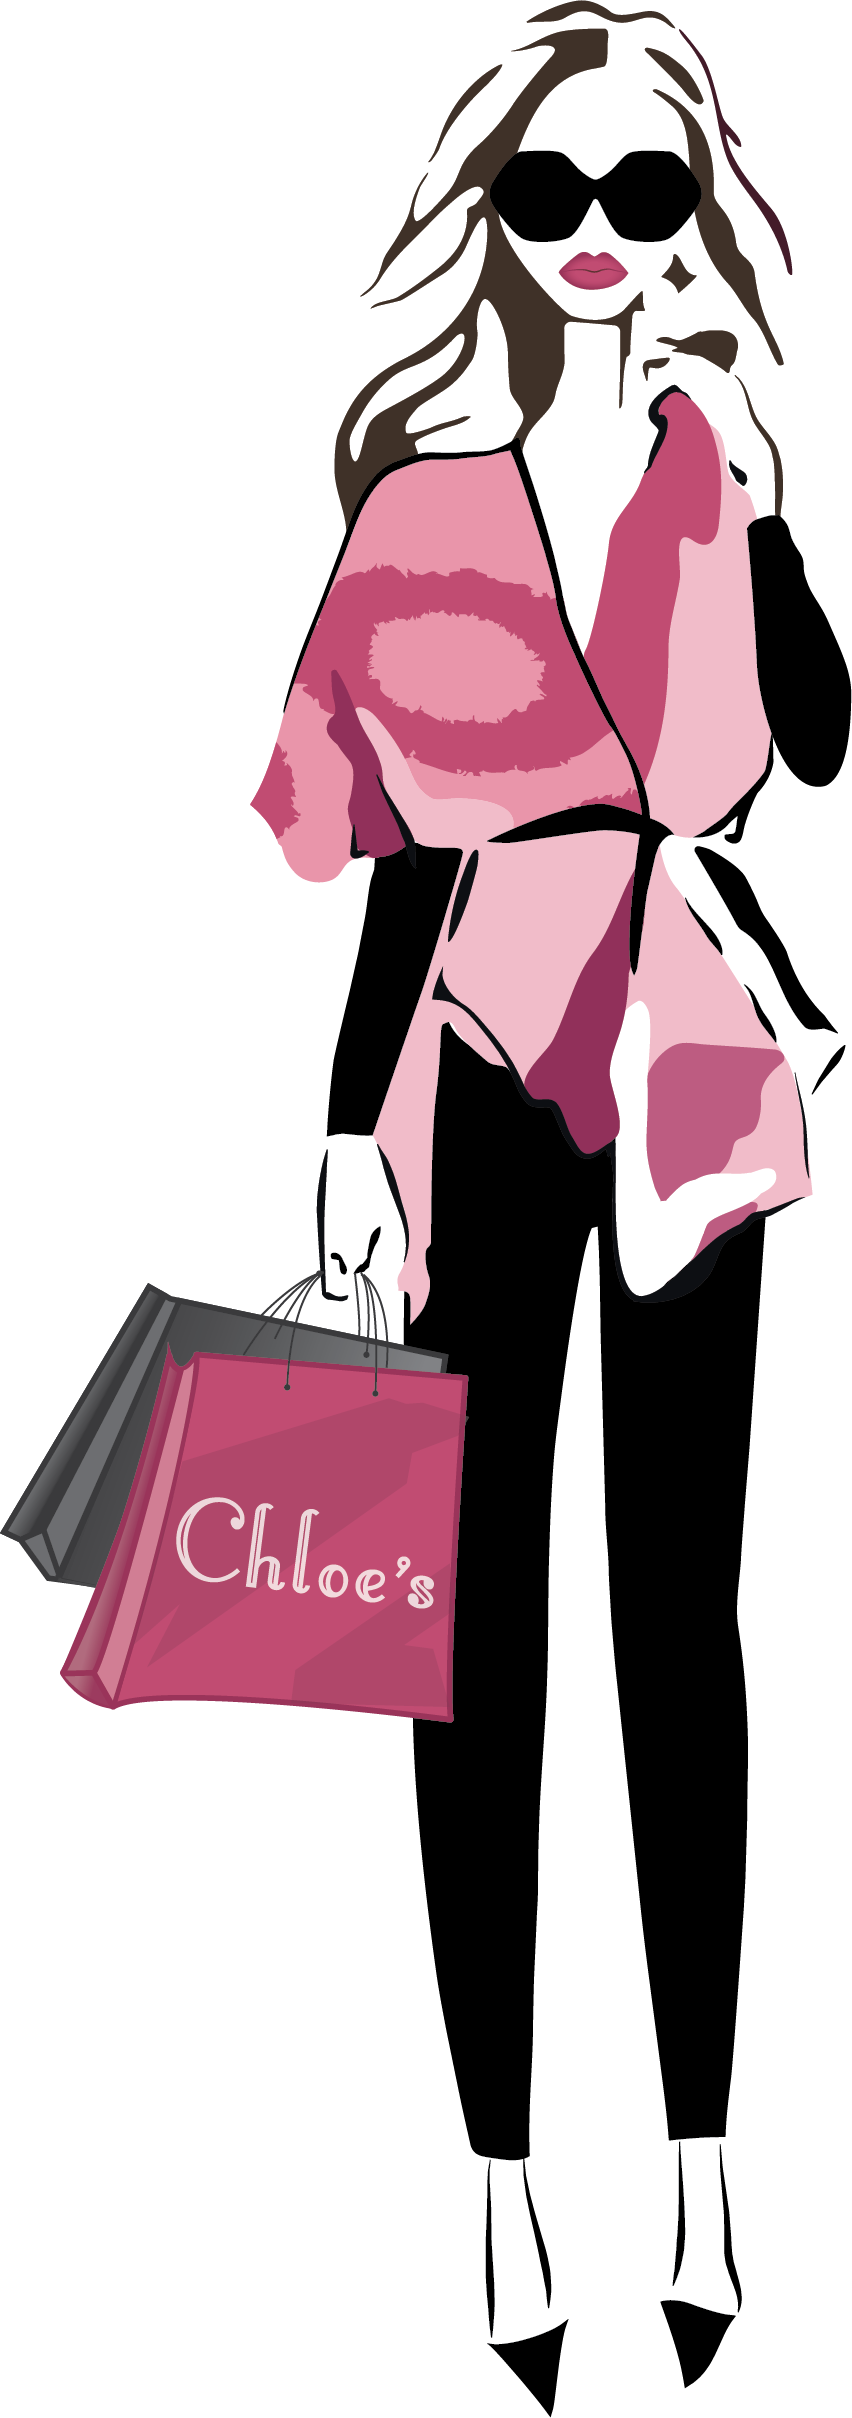 Girl leaving house clipart image library download F.A.Q. - Chloe's Adornments image library download